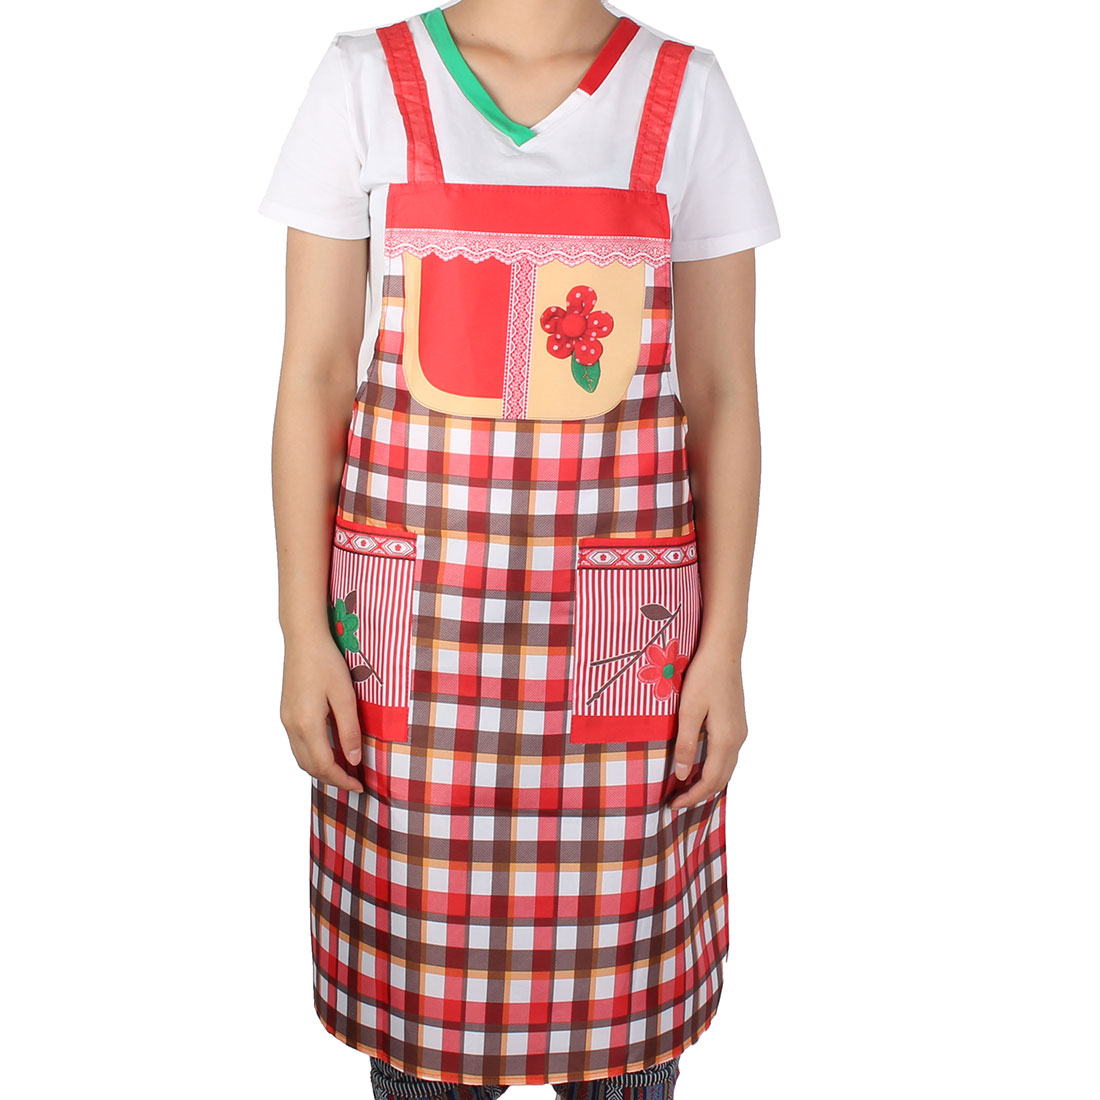 Woman Hotel Coffee Fruit Shop Flower Printed Check Patern Dress Pocket Apron Bib Multicolor